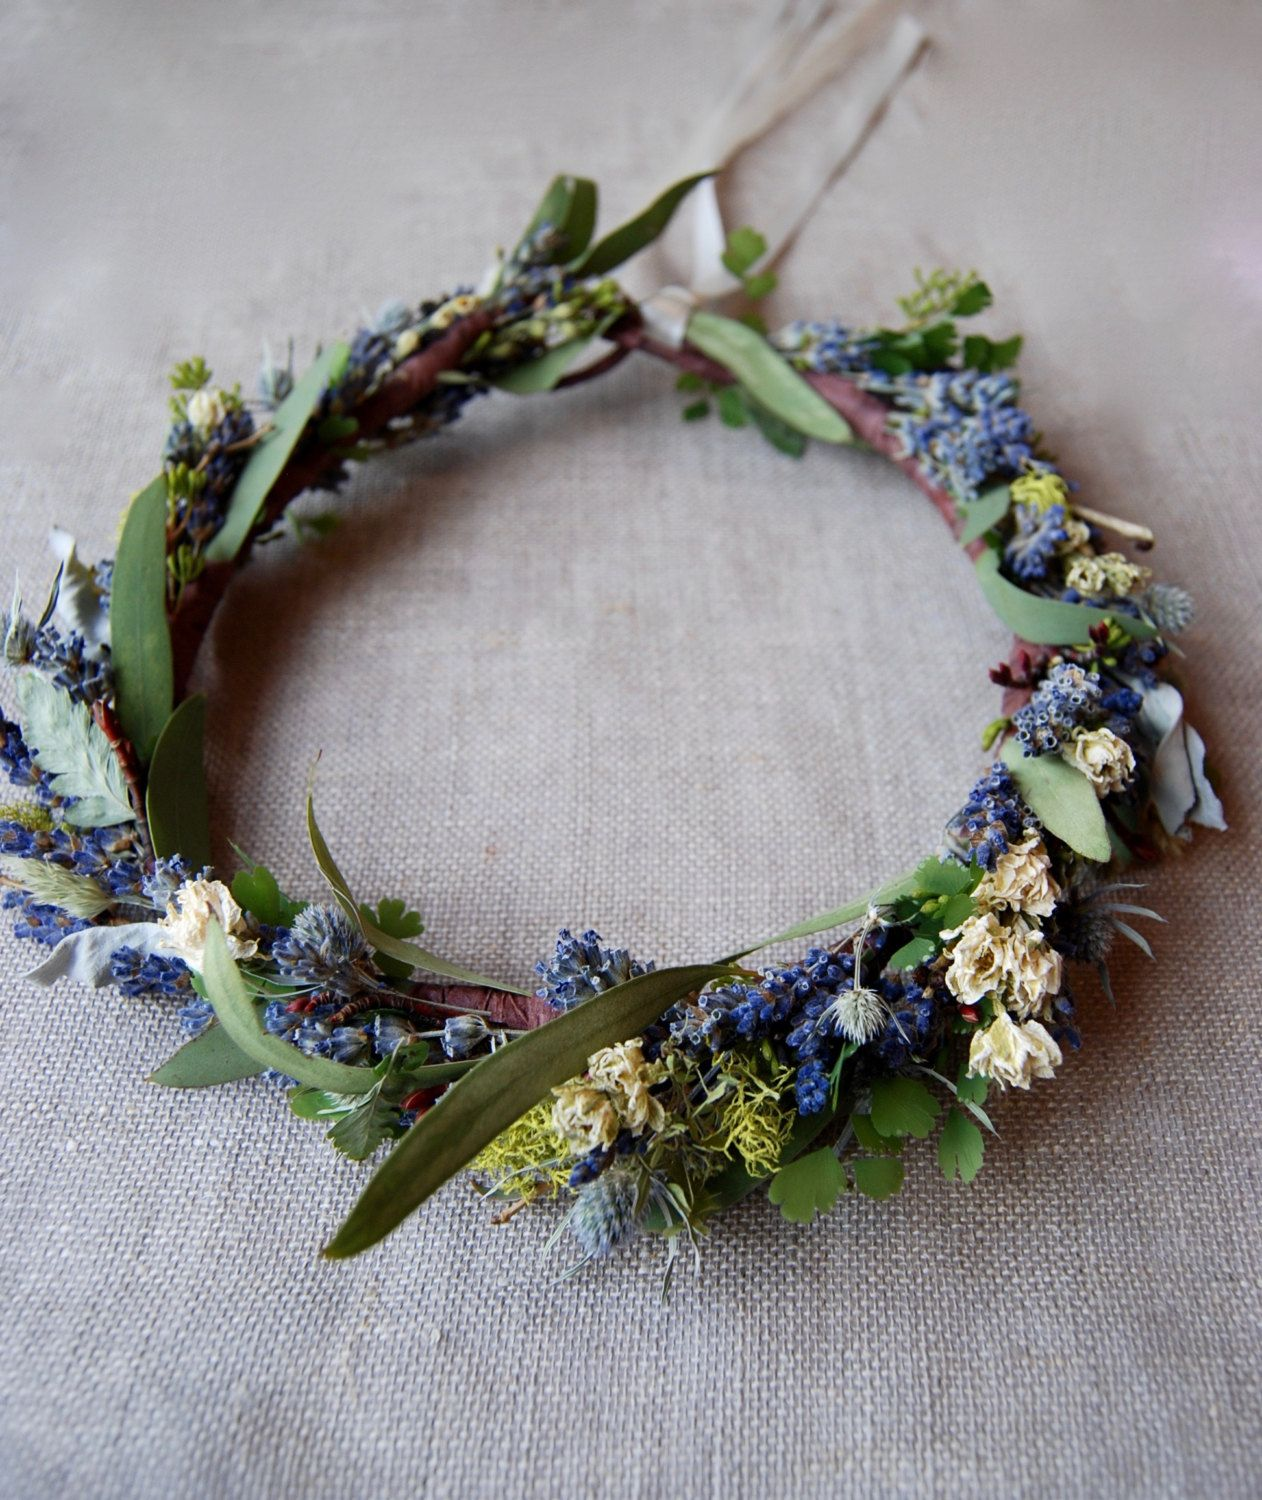 Woodland Meadow Flower Crown Of Lavender Larkspur Lichens Moss Ferns Seeded Eucalyptus Grasses And Other Drie Flower Crown Floral Crown Veil Meadow Flowers